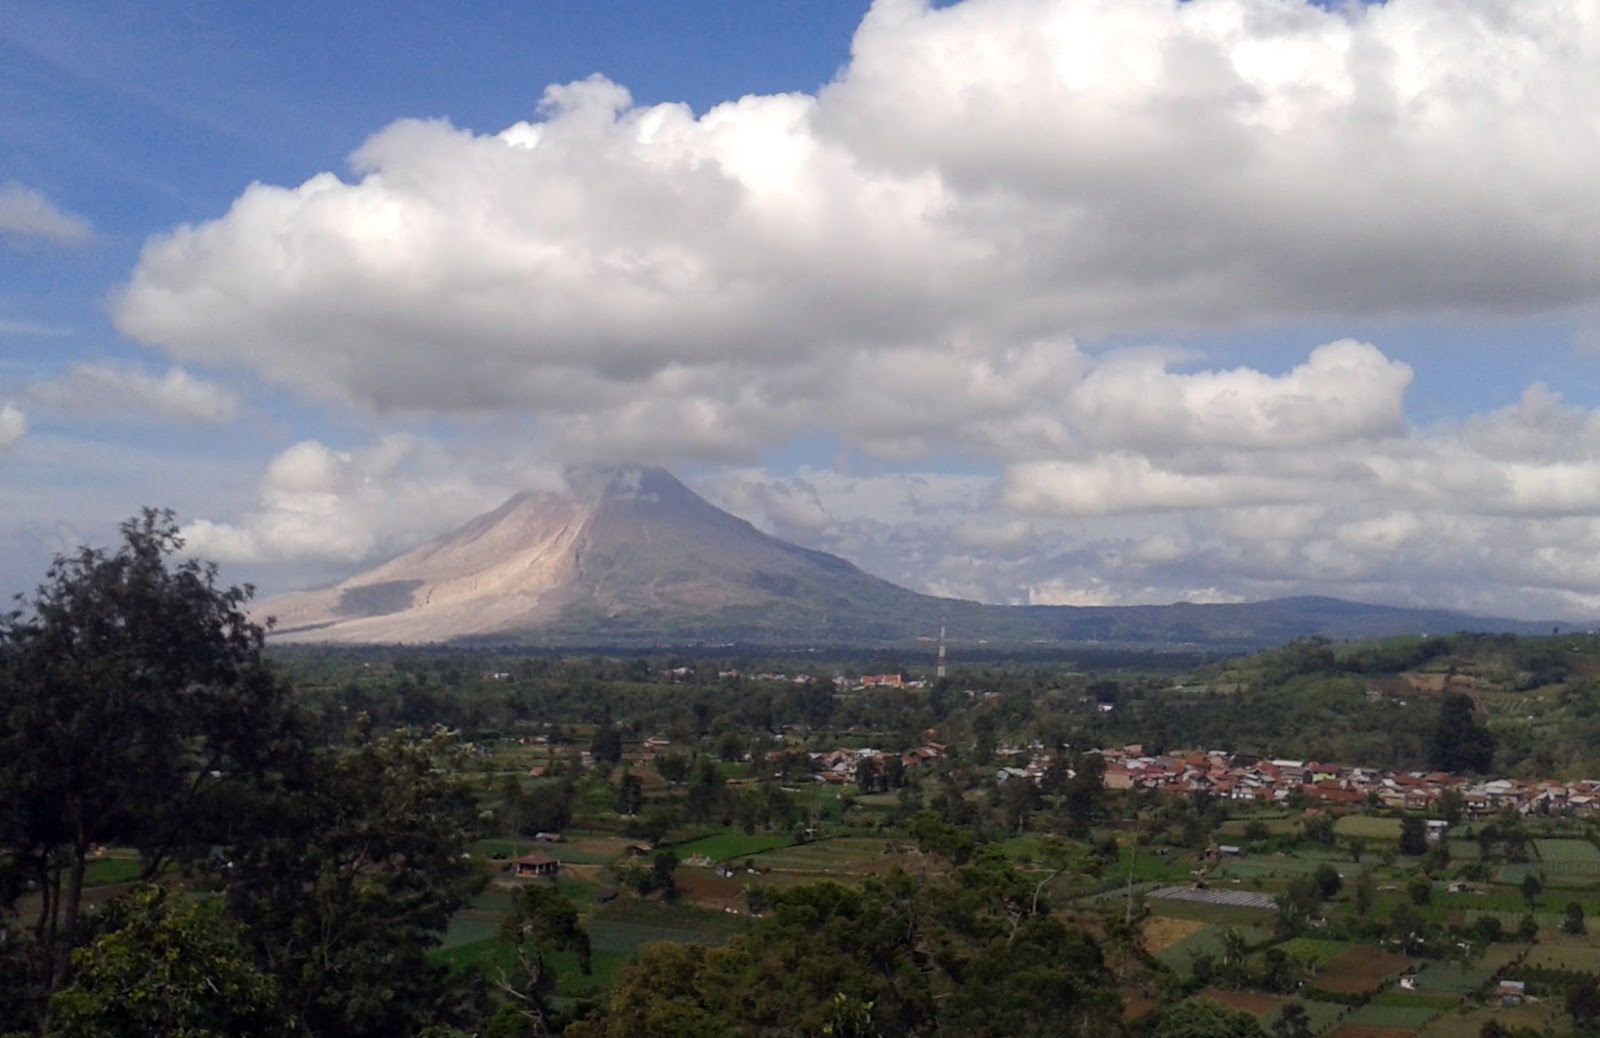 Views of Mount Sinabung and plots